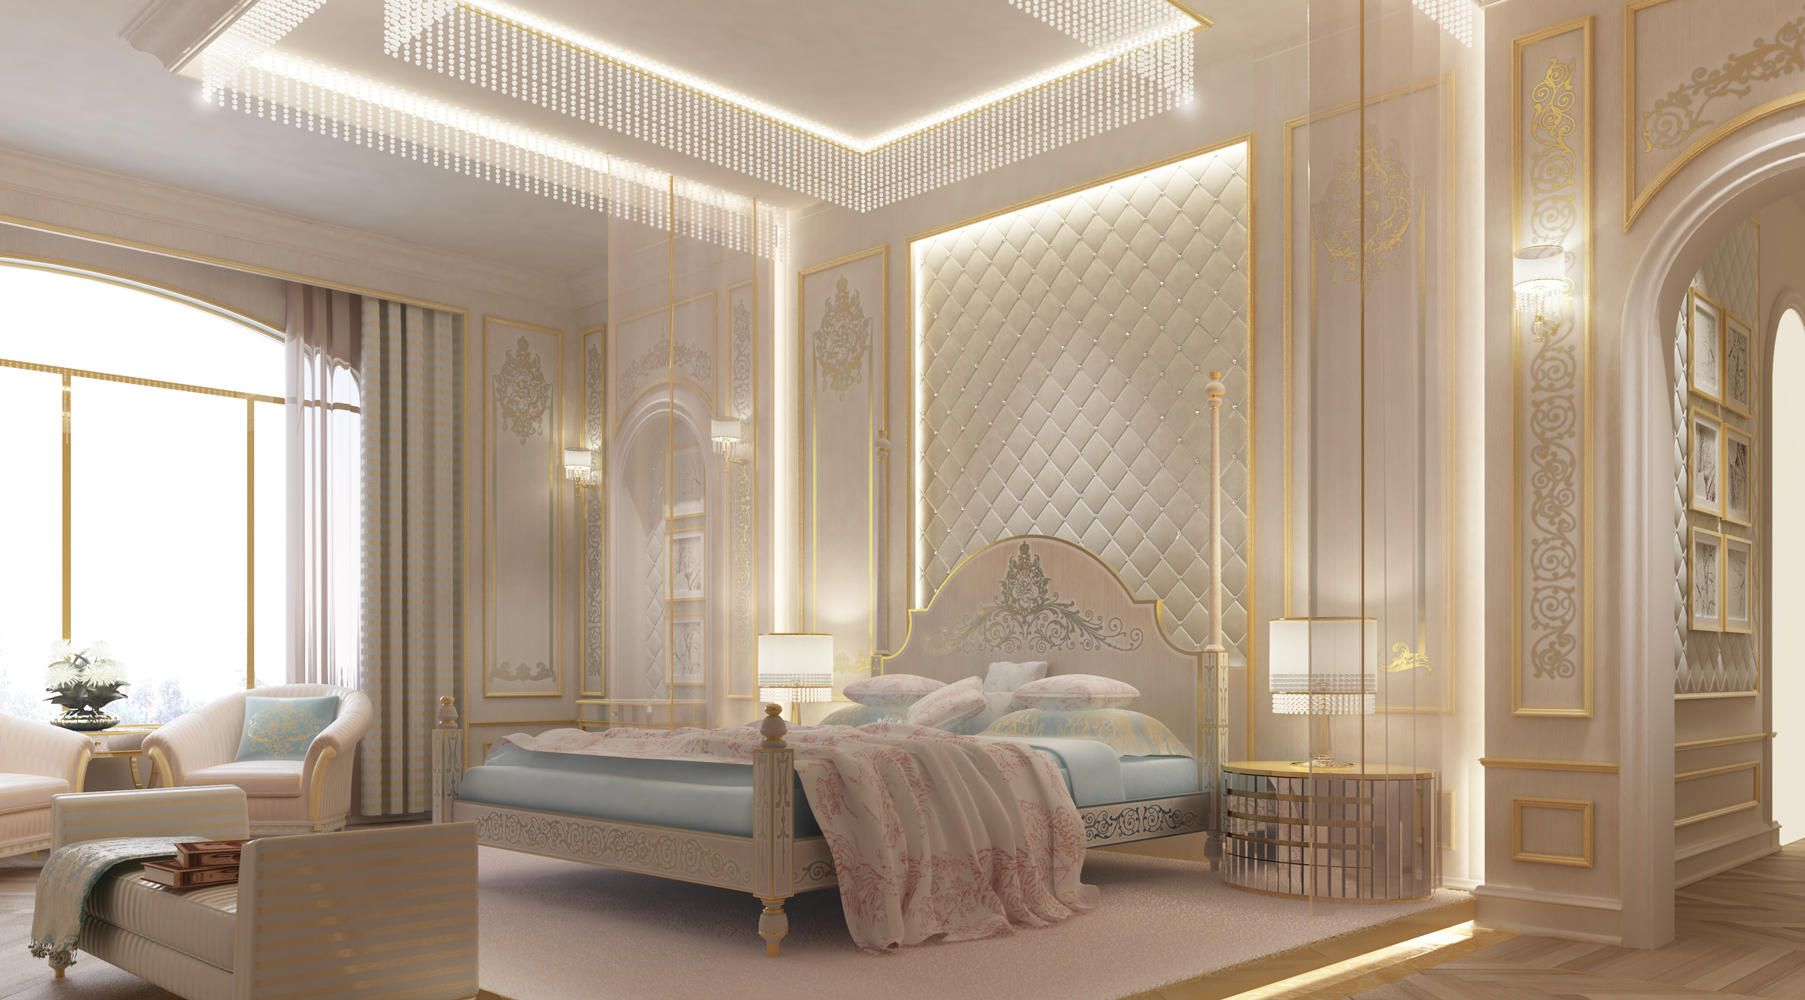 Dubai bedroom bedroom design abu dhabi d for Best luxury interior designers